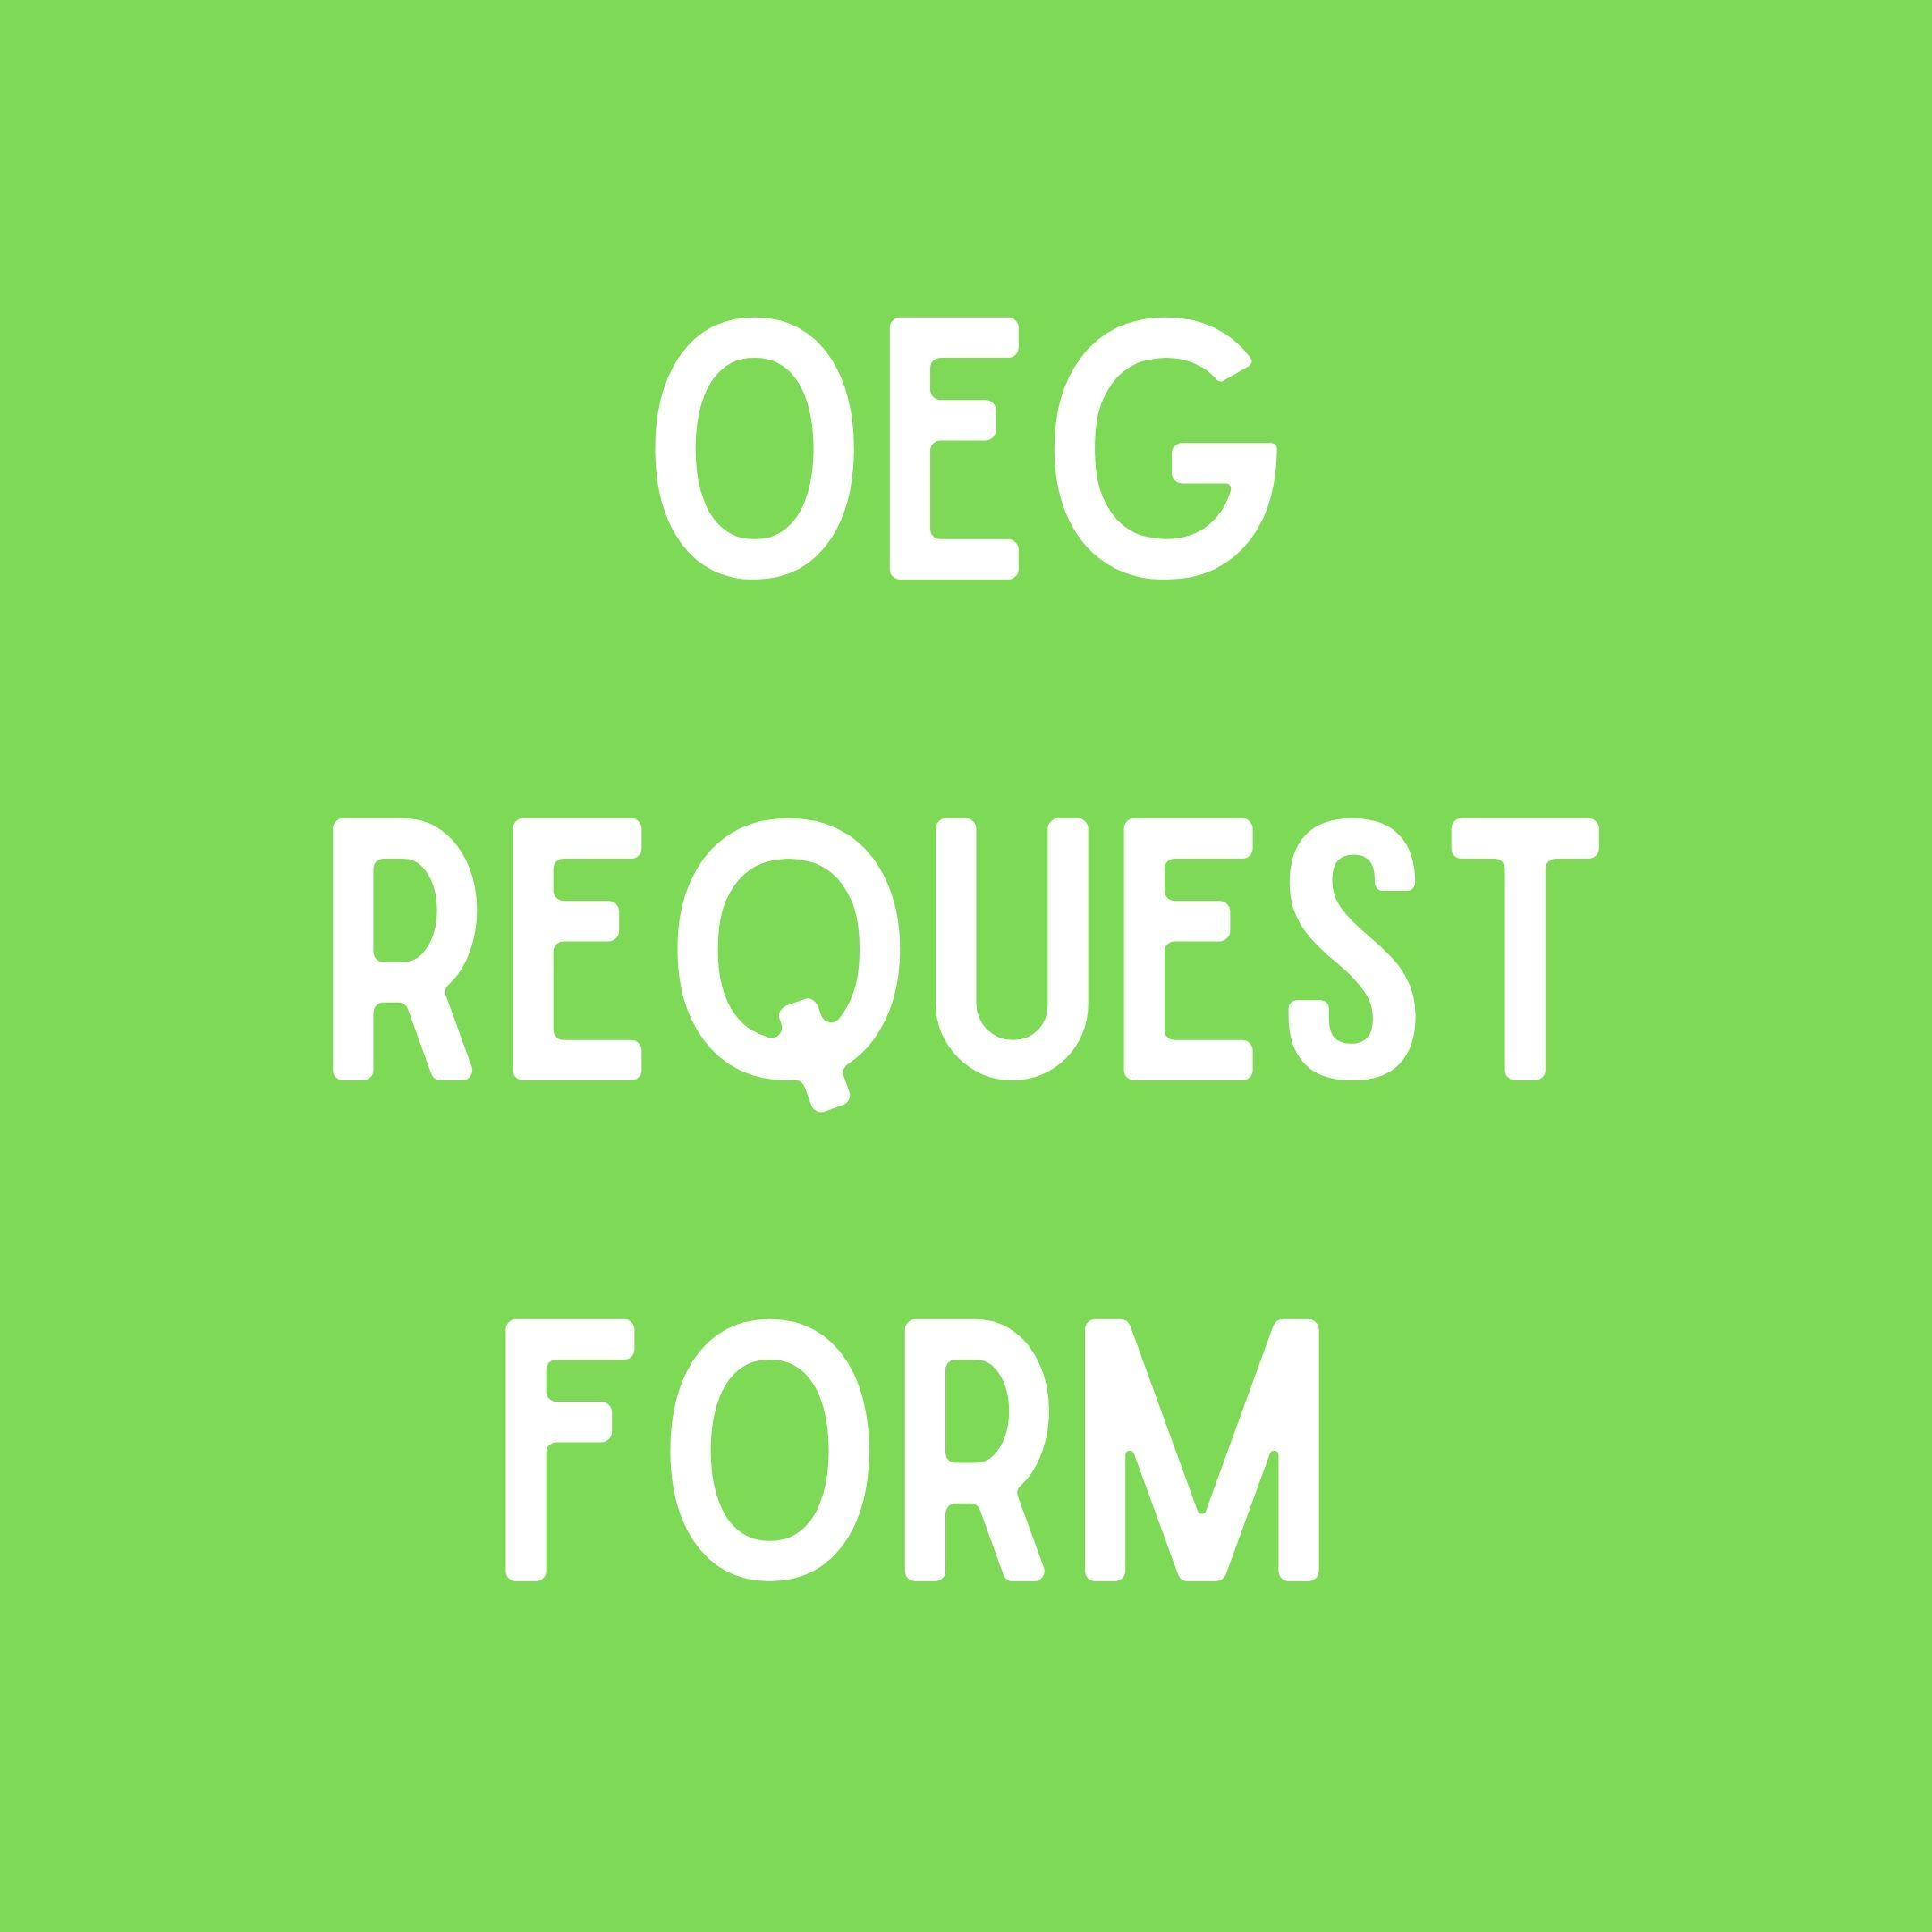 oeg request form